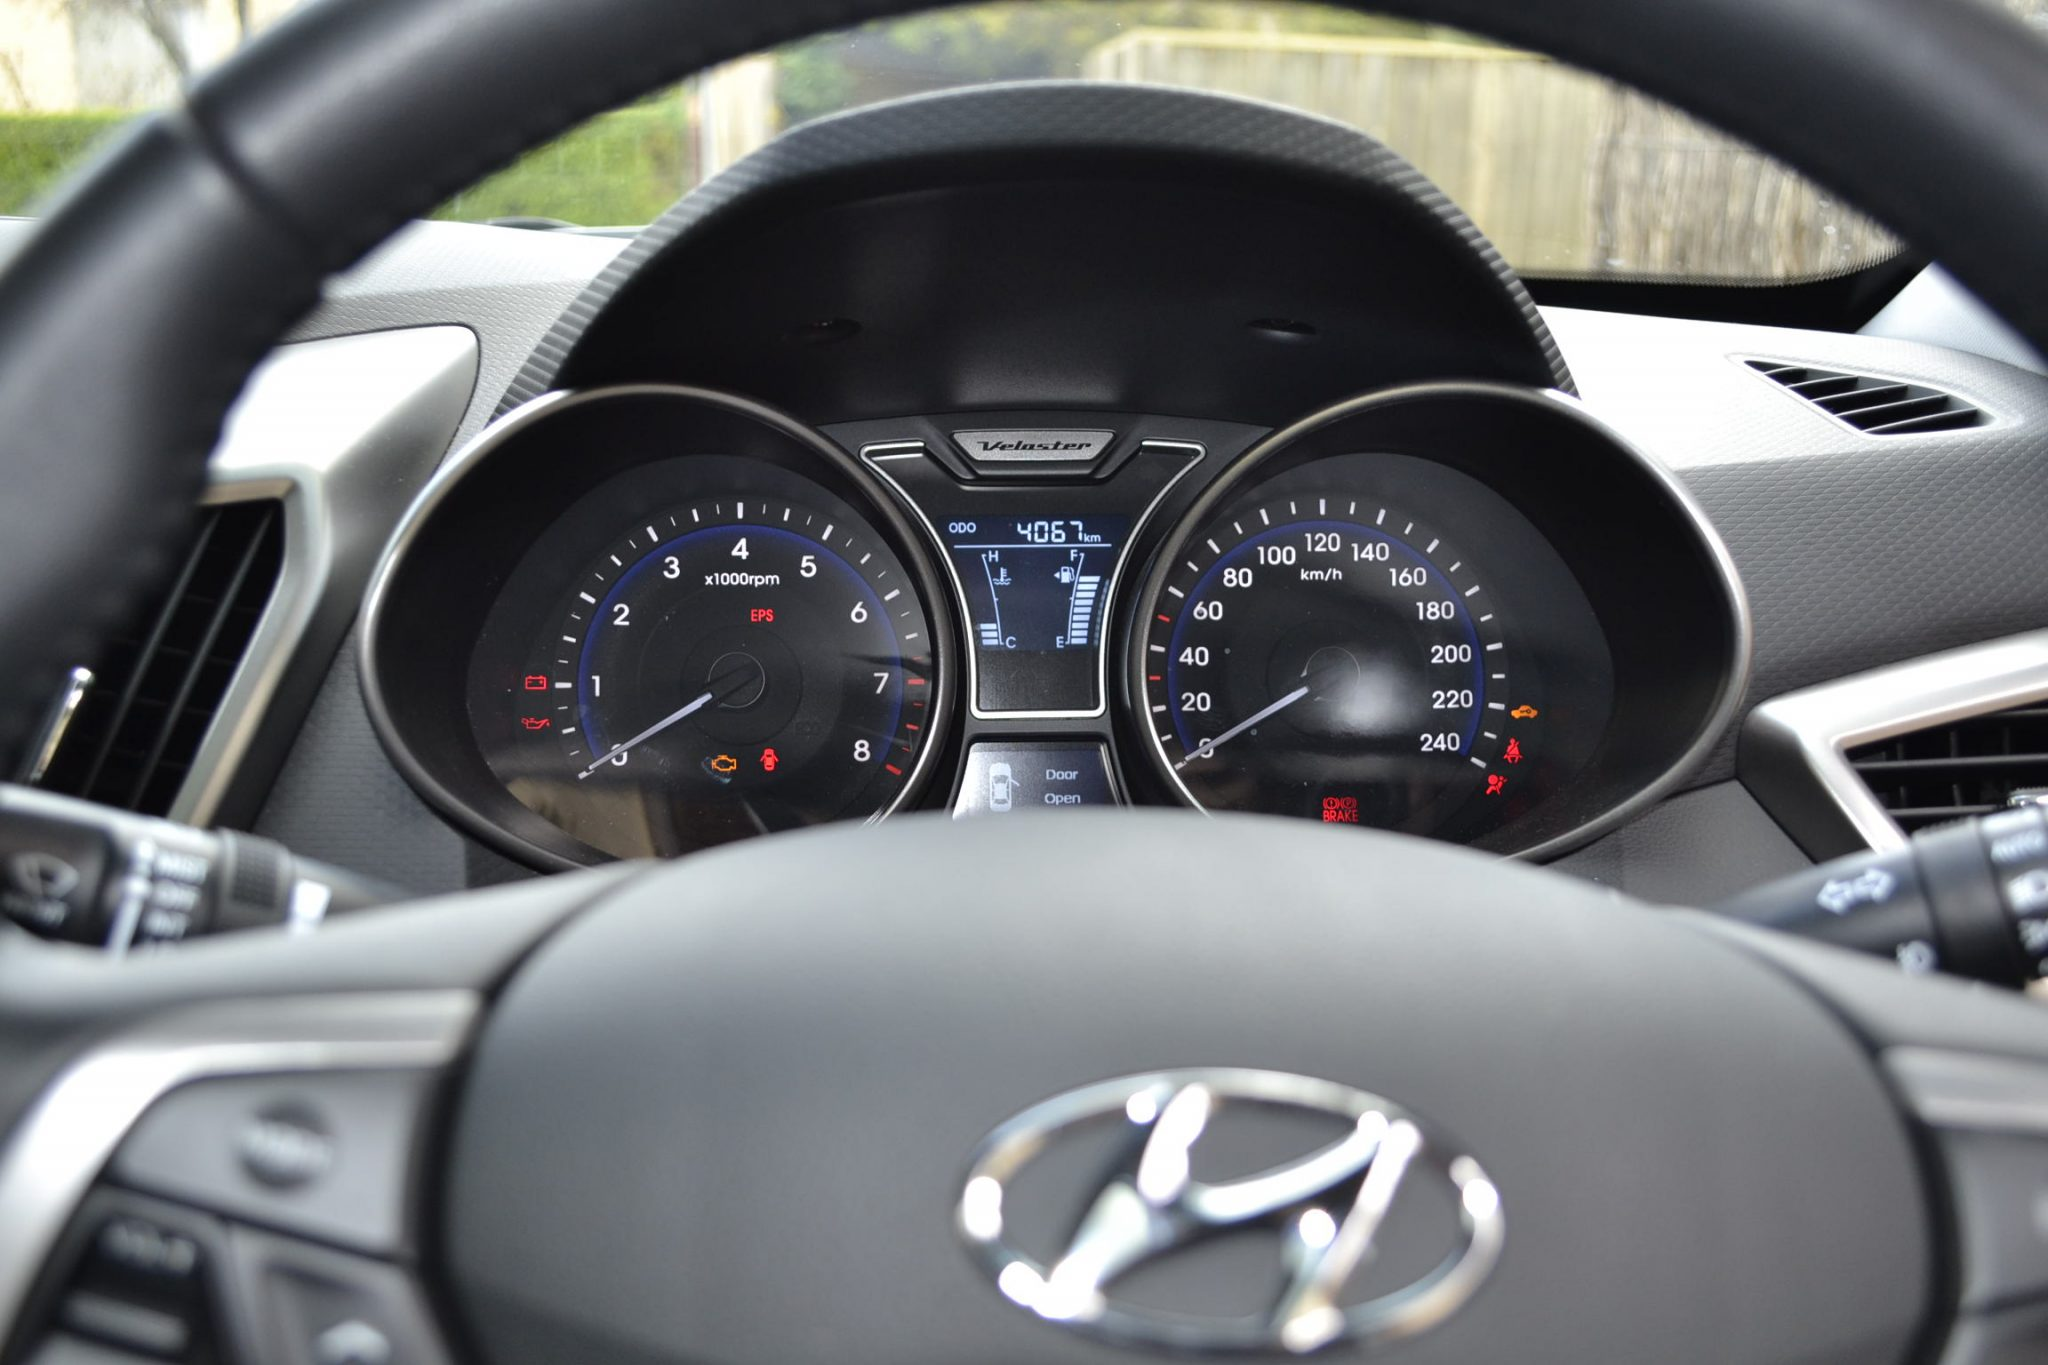 2014 hyundai genesis new and used car reliability autos post. Black Bedroom Furniture Sets. Home Design Ideas